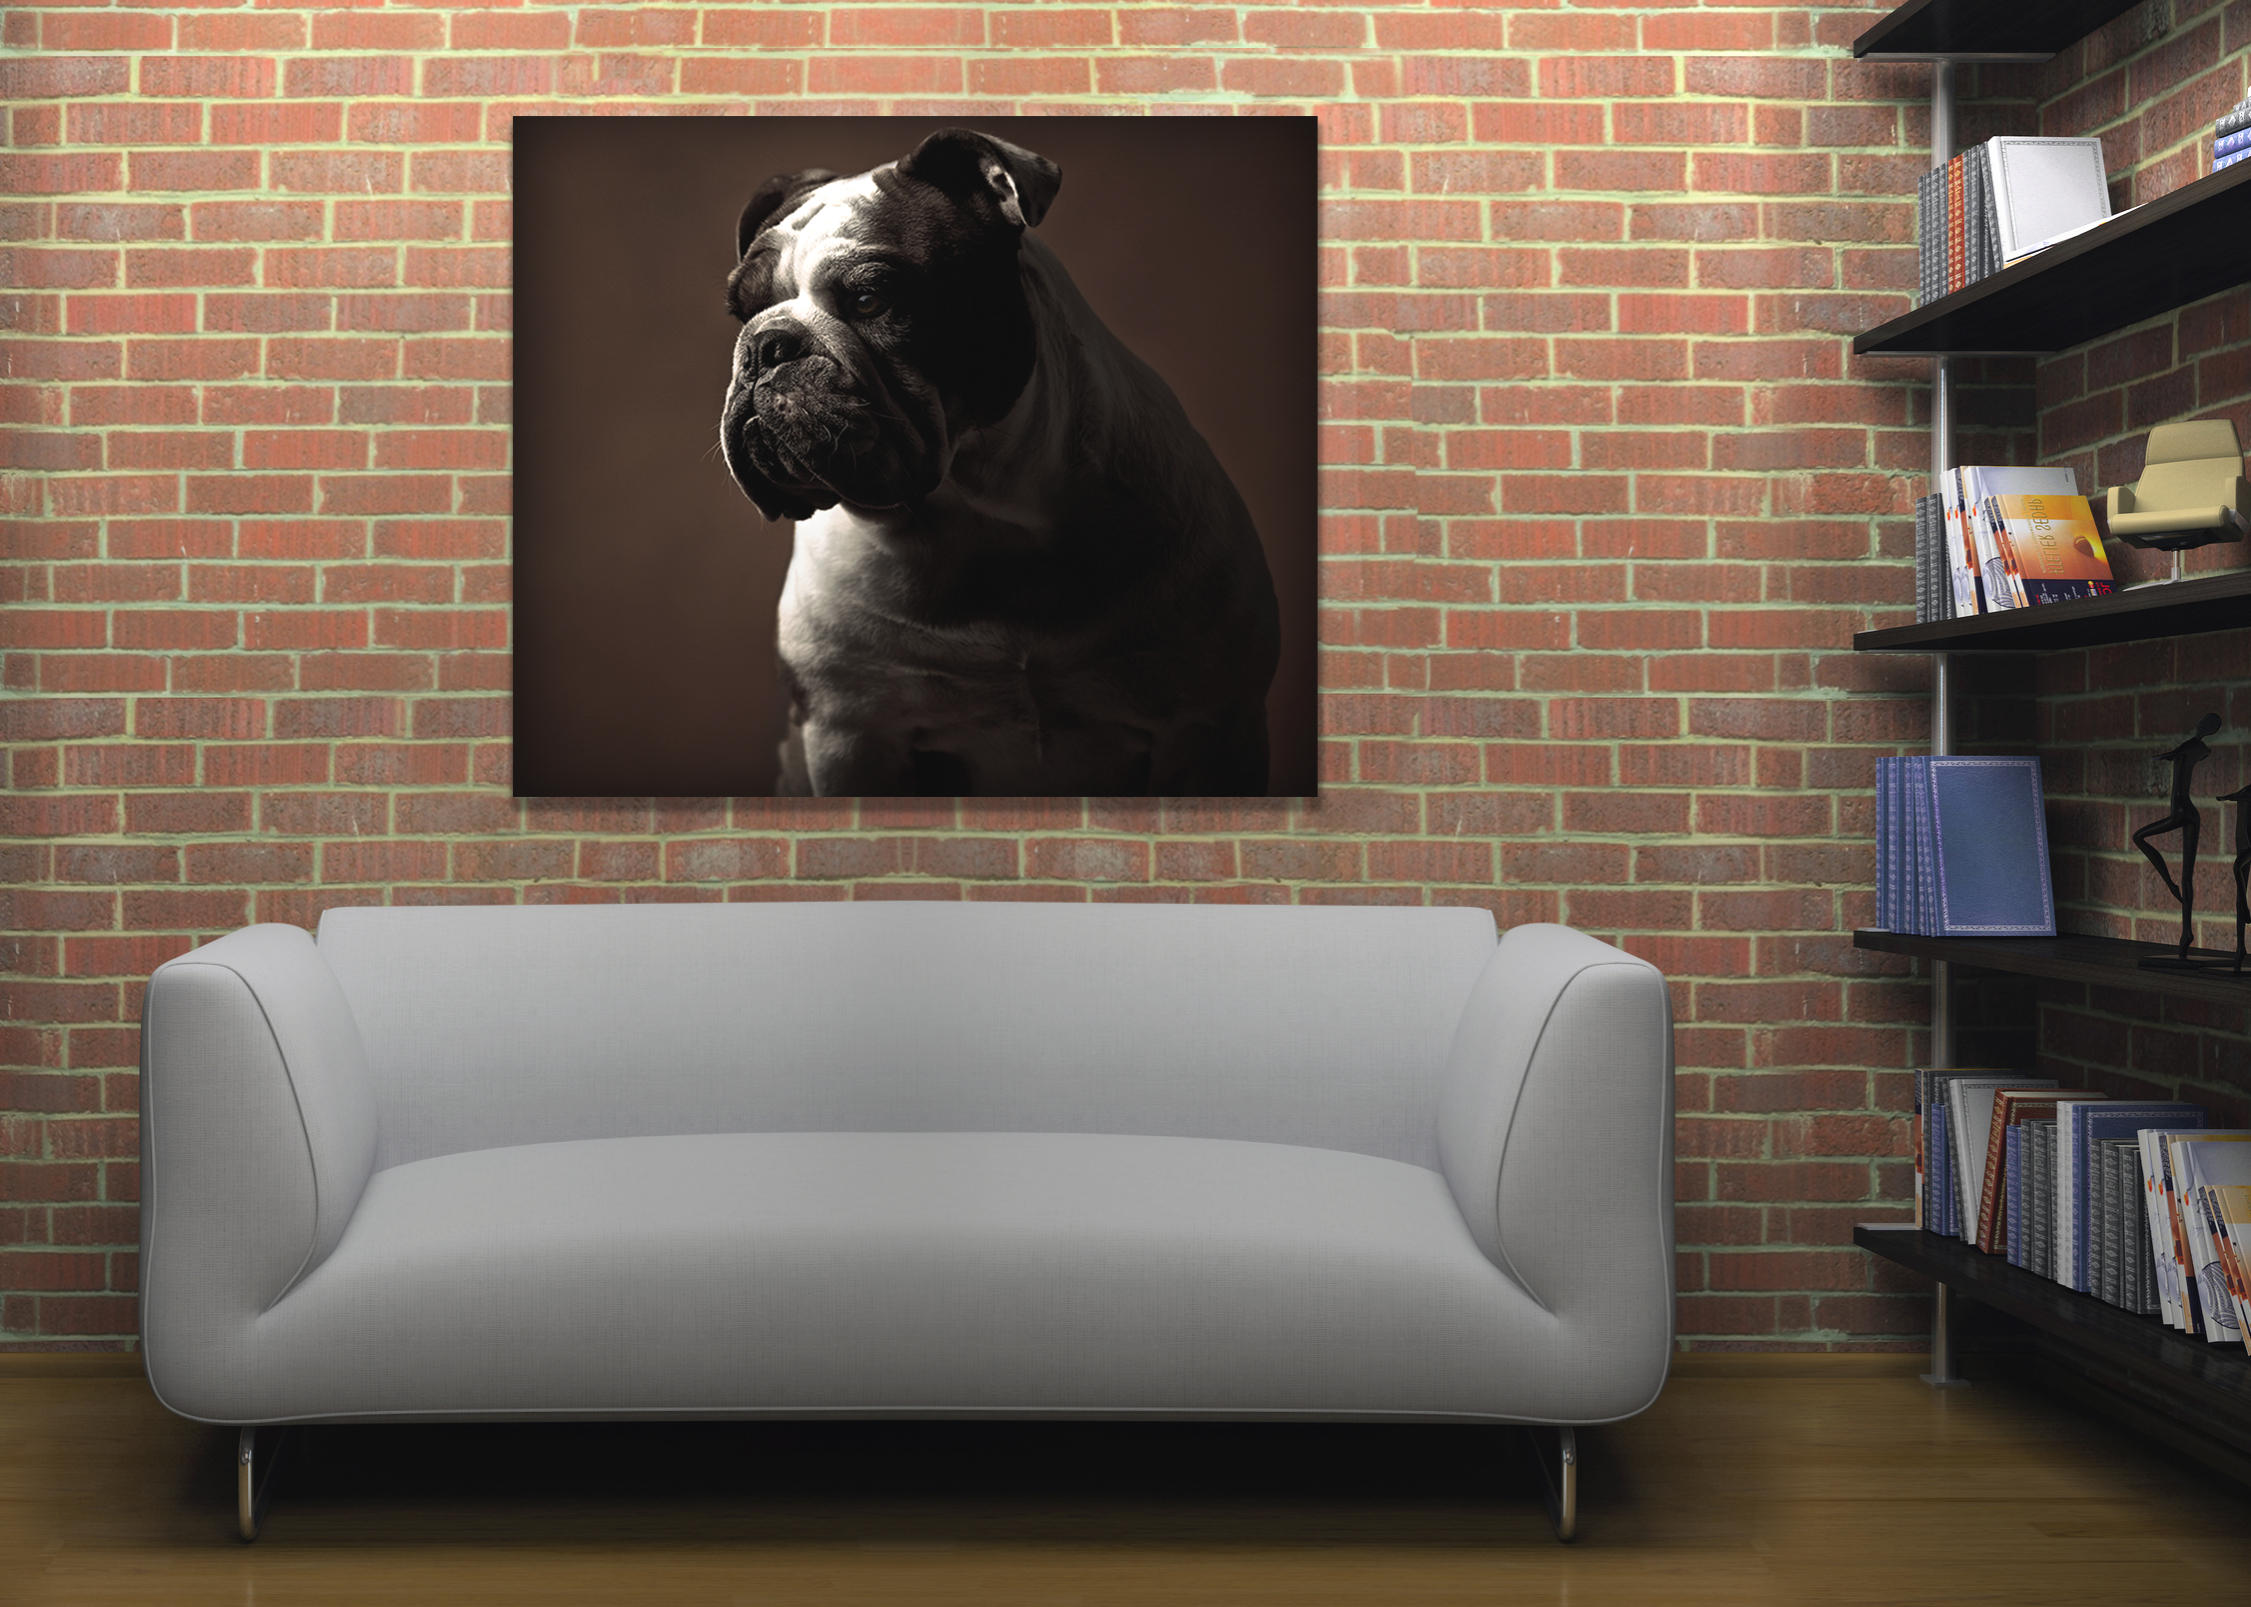 The best gallery is your home. Showcase custom artwork to create a space that speaks (or barks!) to your aesthetic.